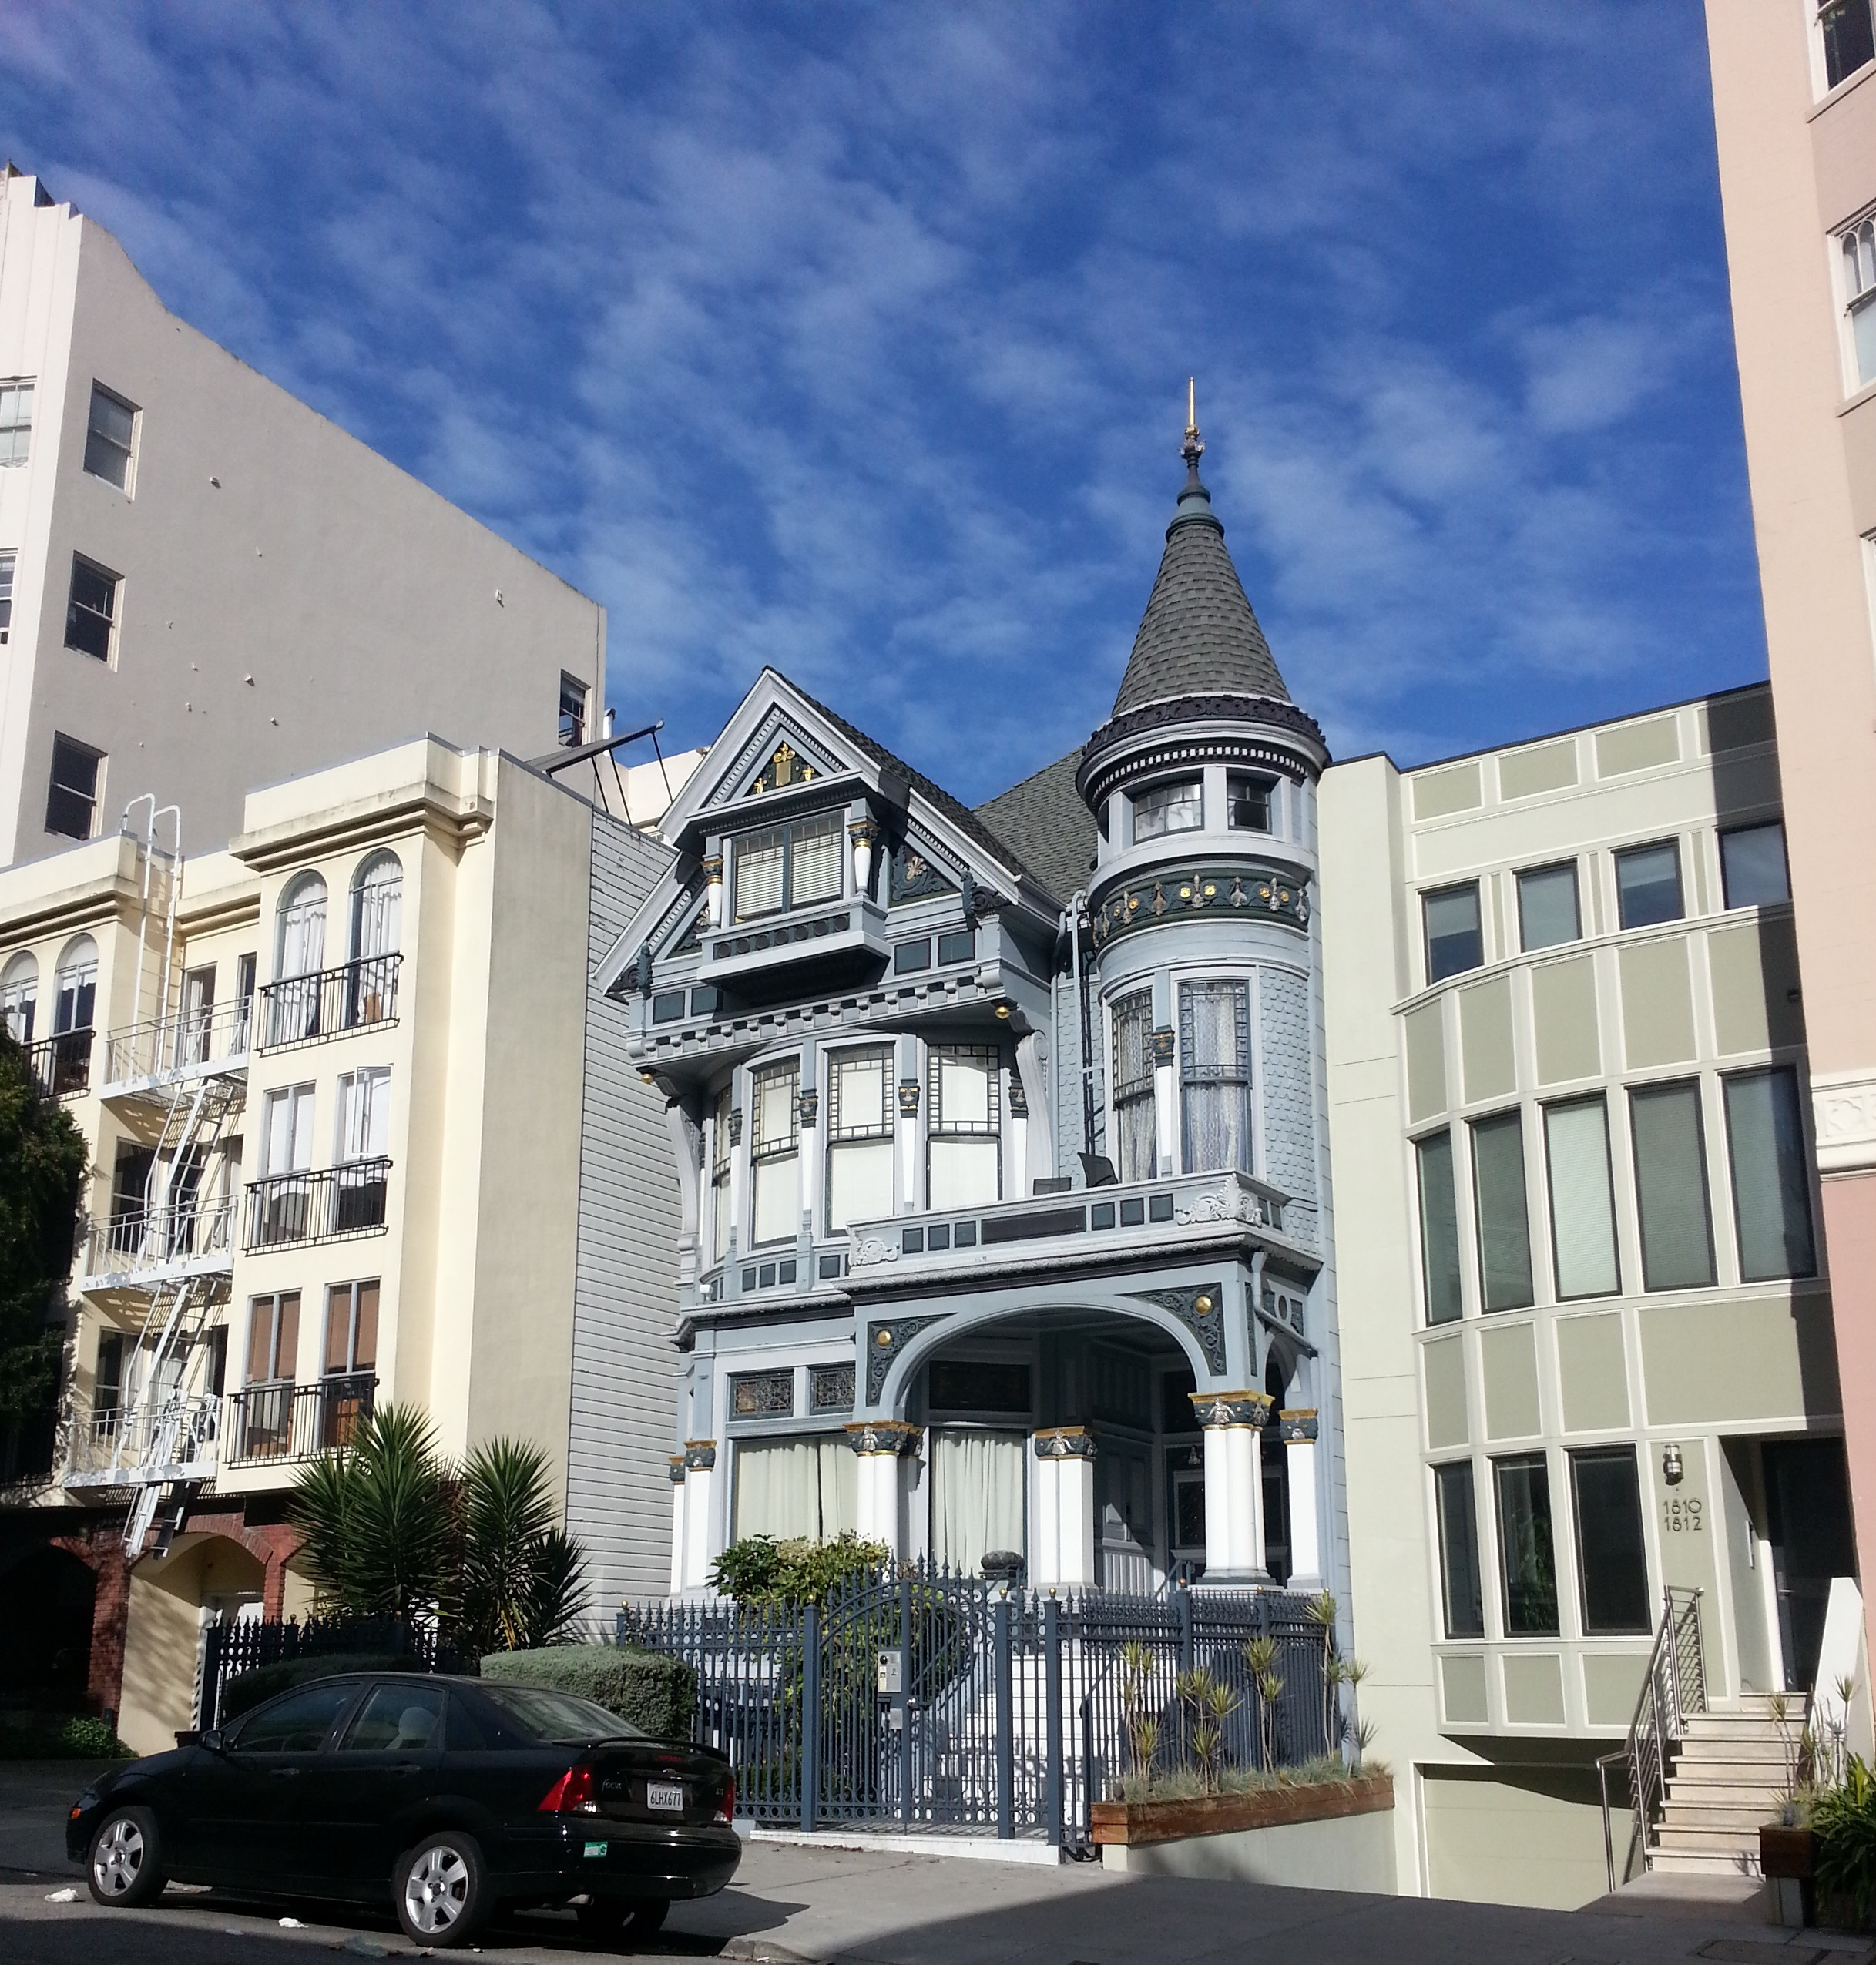 House Rentals San Francisco: A Glimpse Of San Francisco-a Victorian House In Pacific